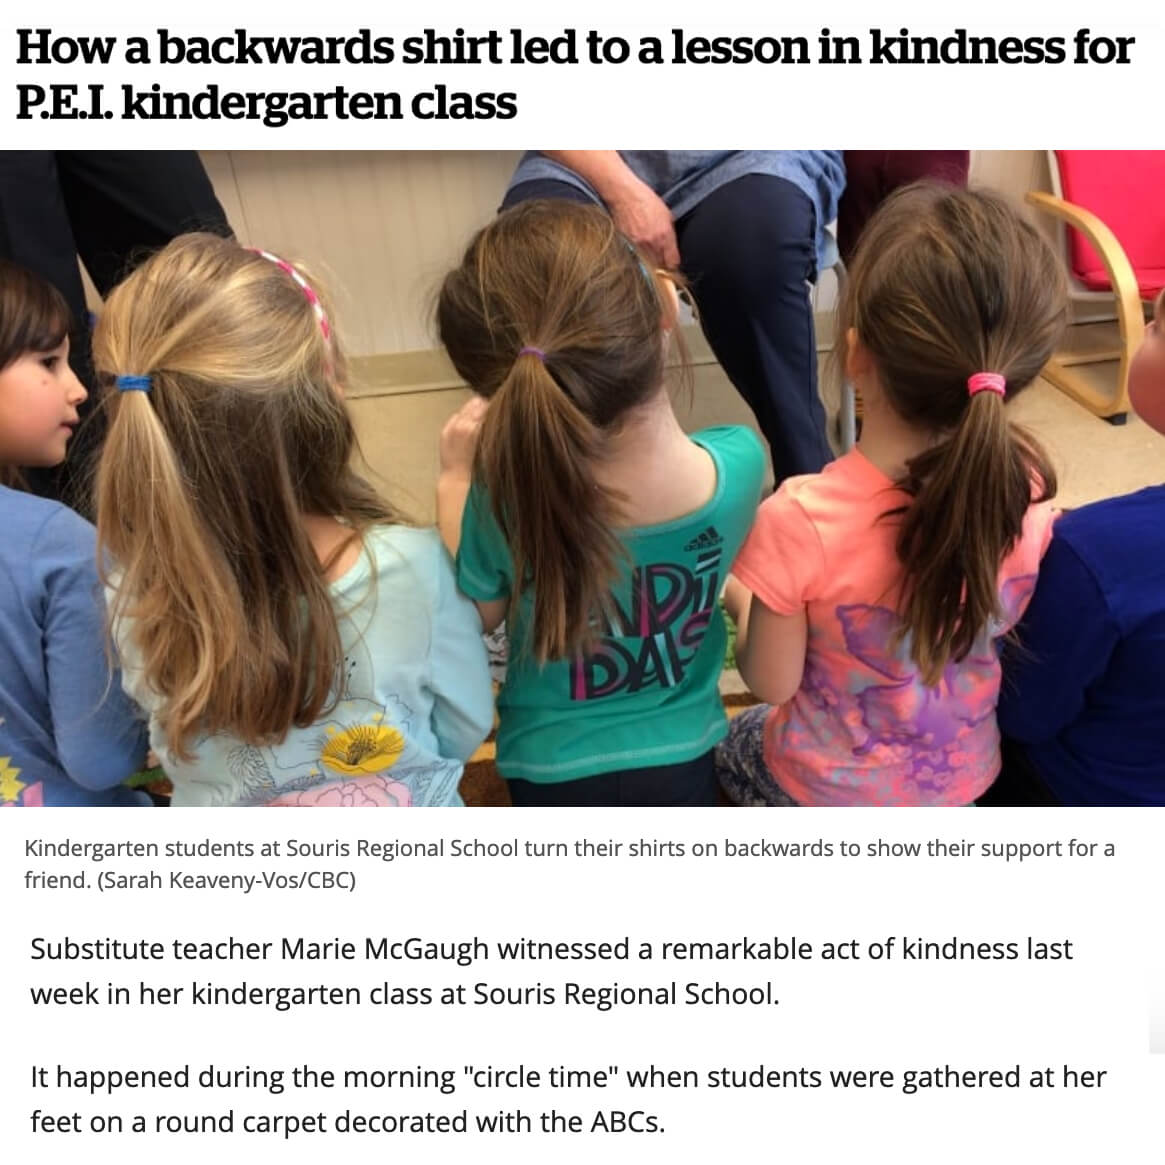 Backward Shirts